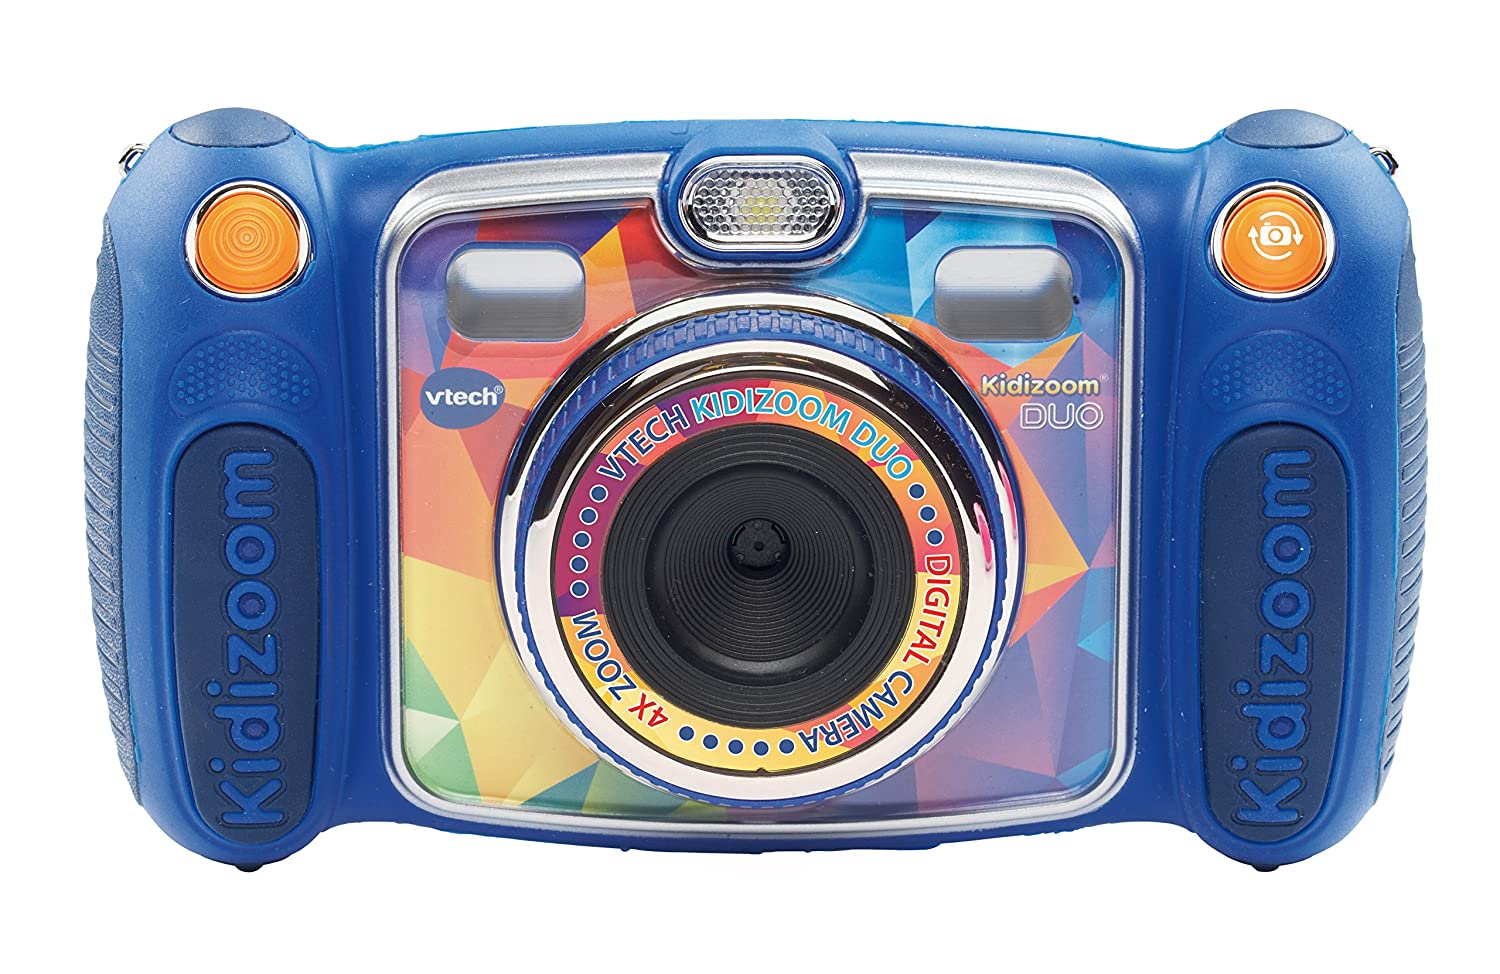 VTech 80-170804 - Digitalkamera - Kidizoom Duo